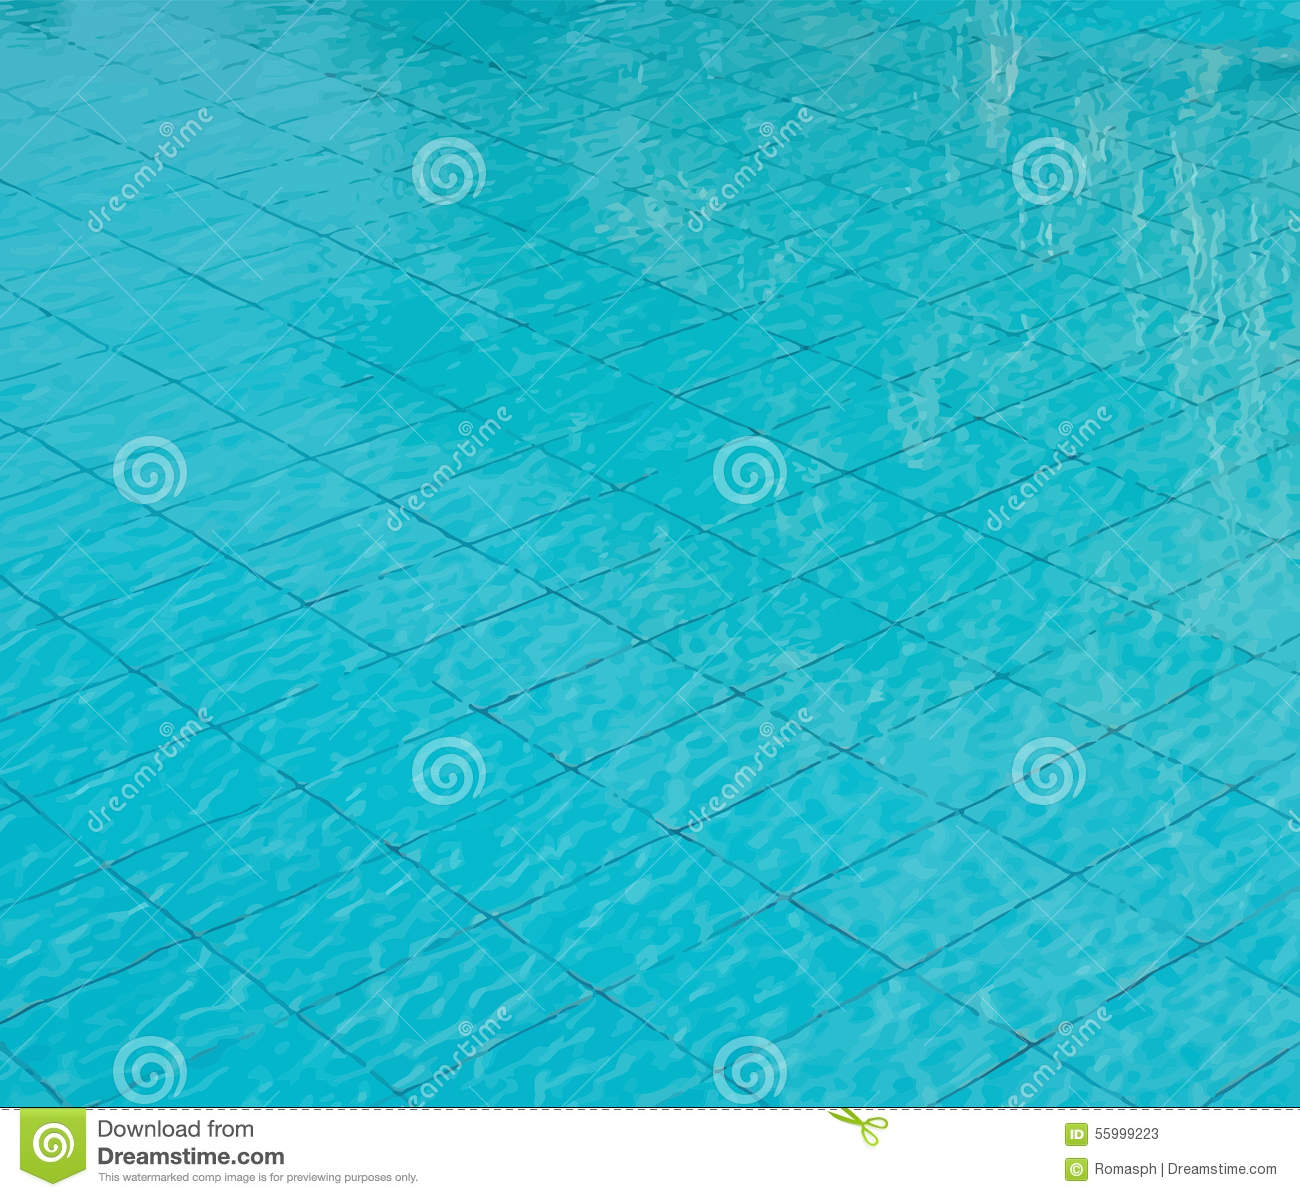 Realistic Water Texture